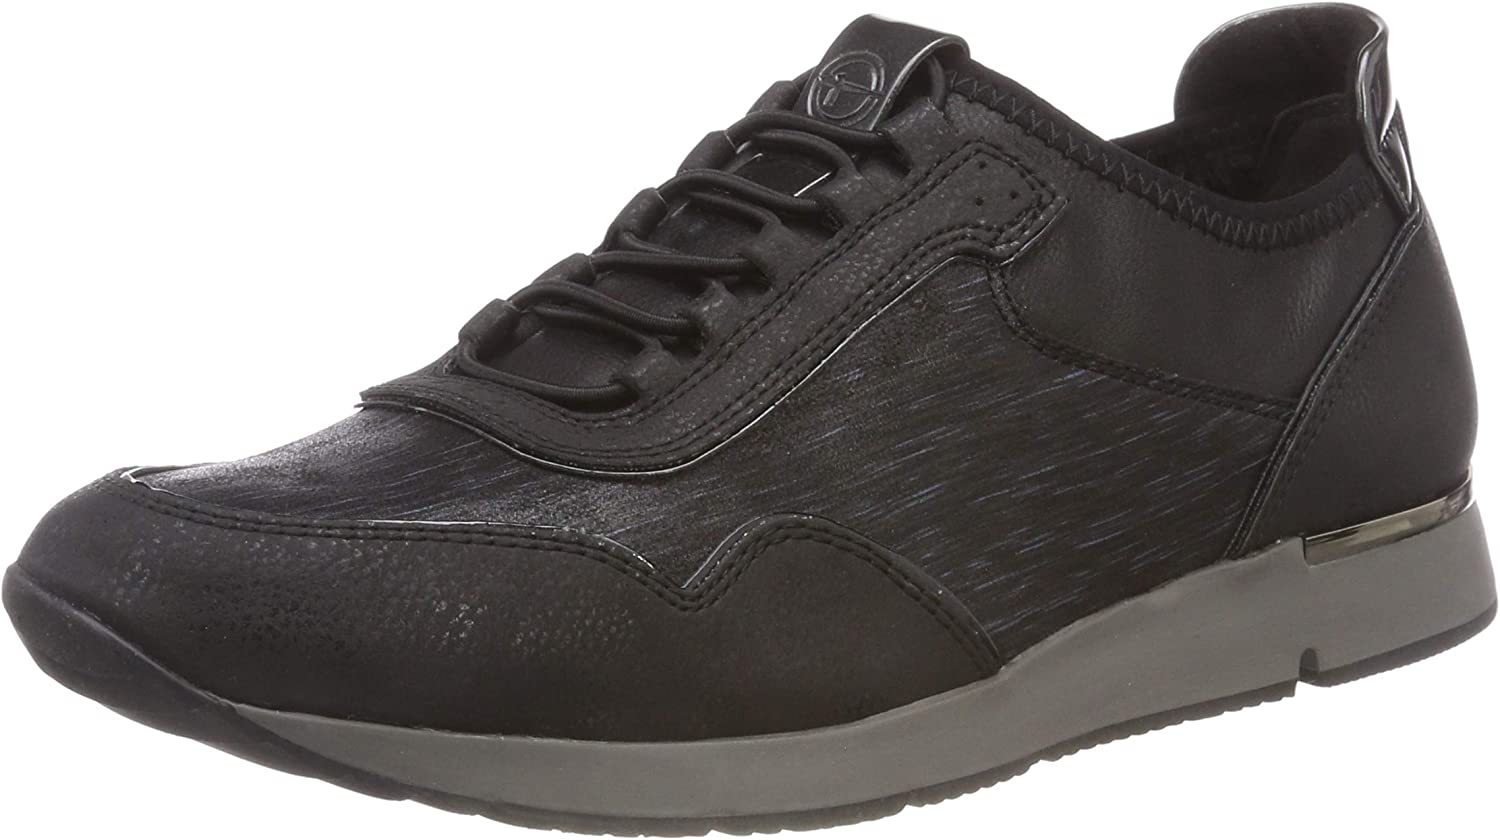 Tamaris Women's 24706-21 Low-Top Sneakers